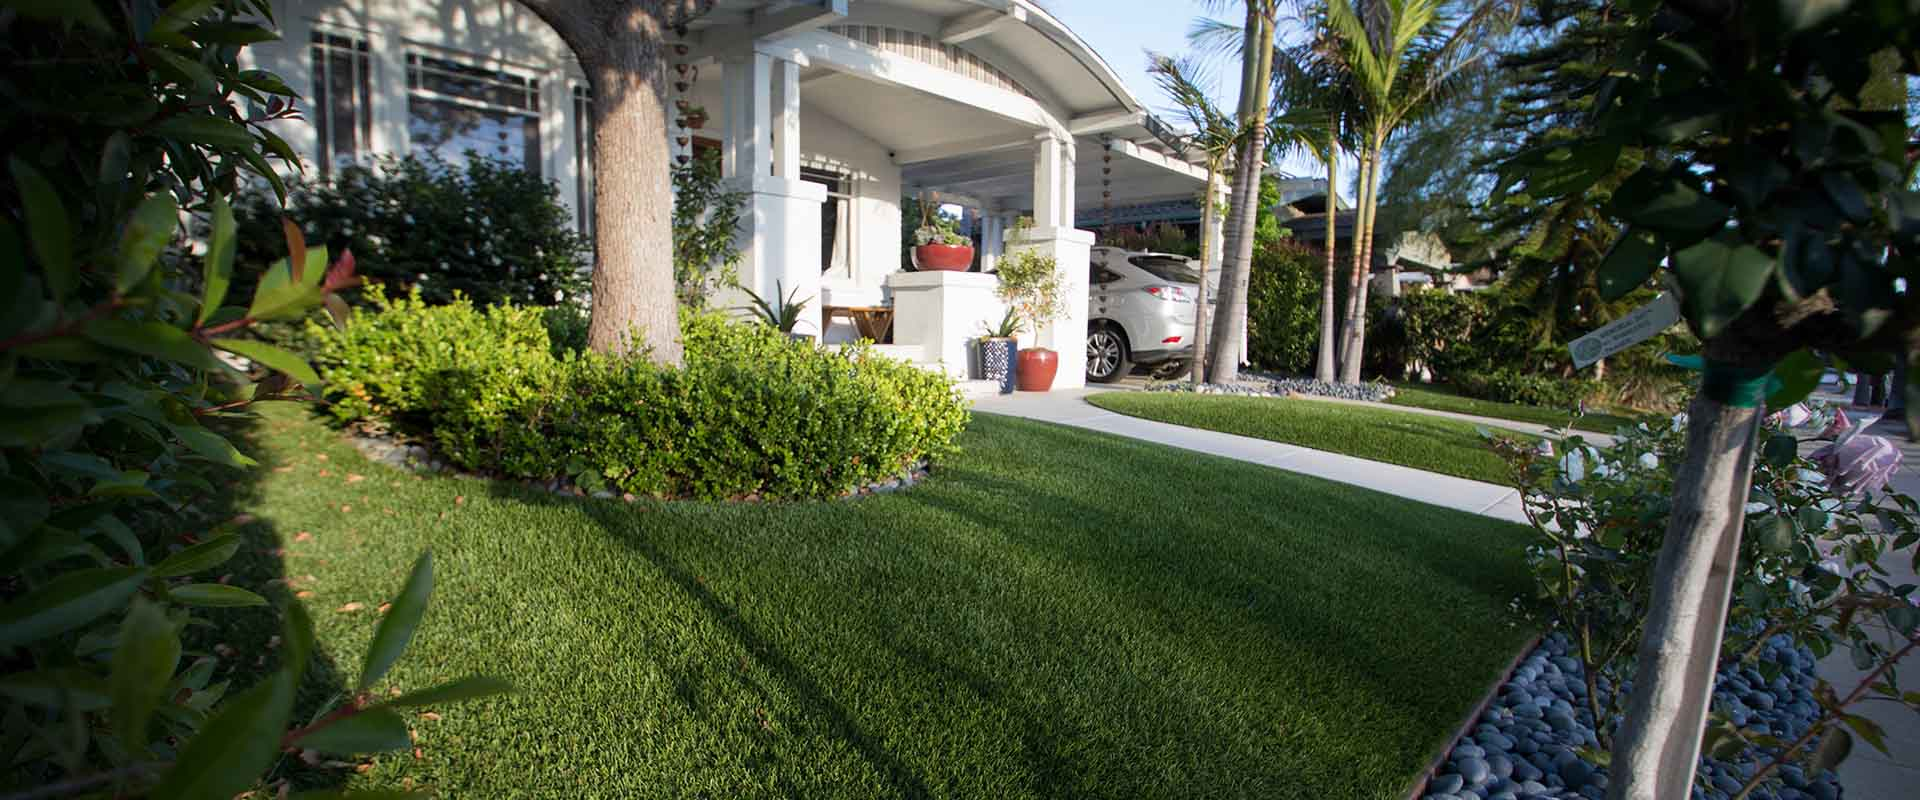 artificial grass for your georgia home by synlawn